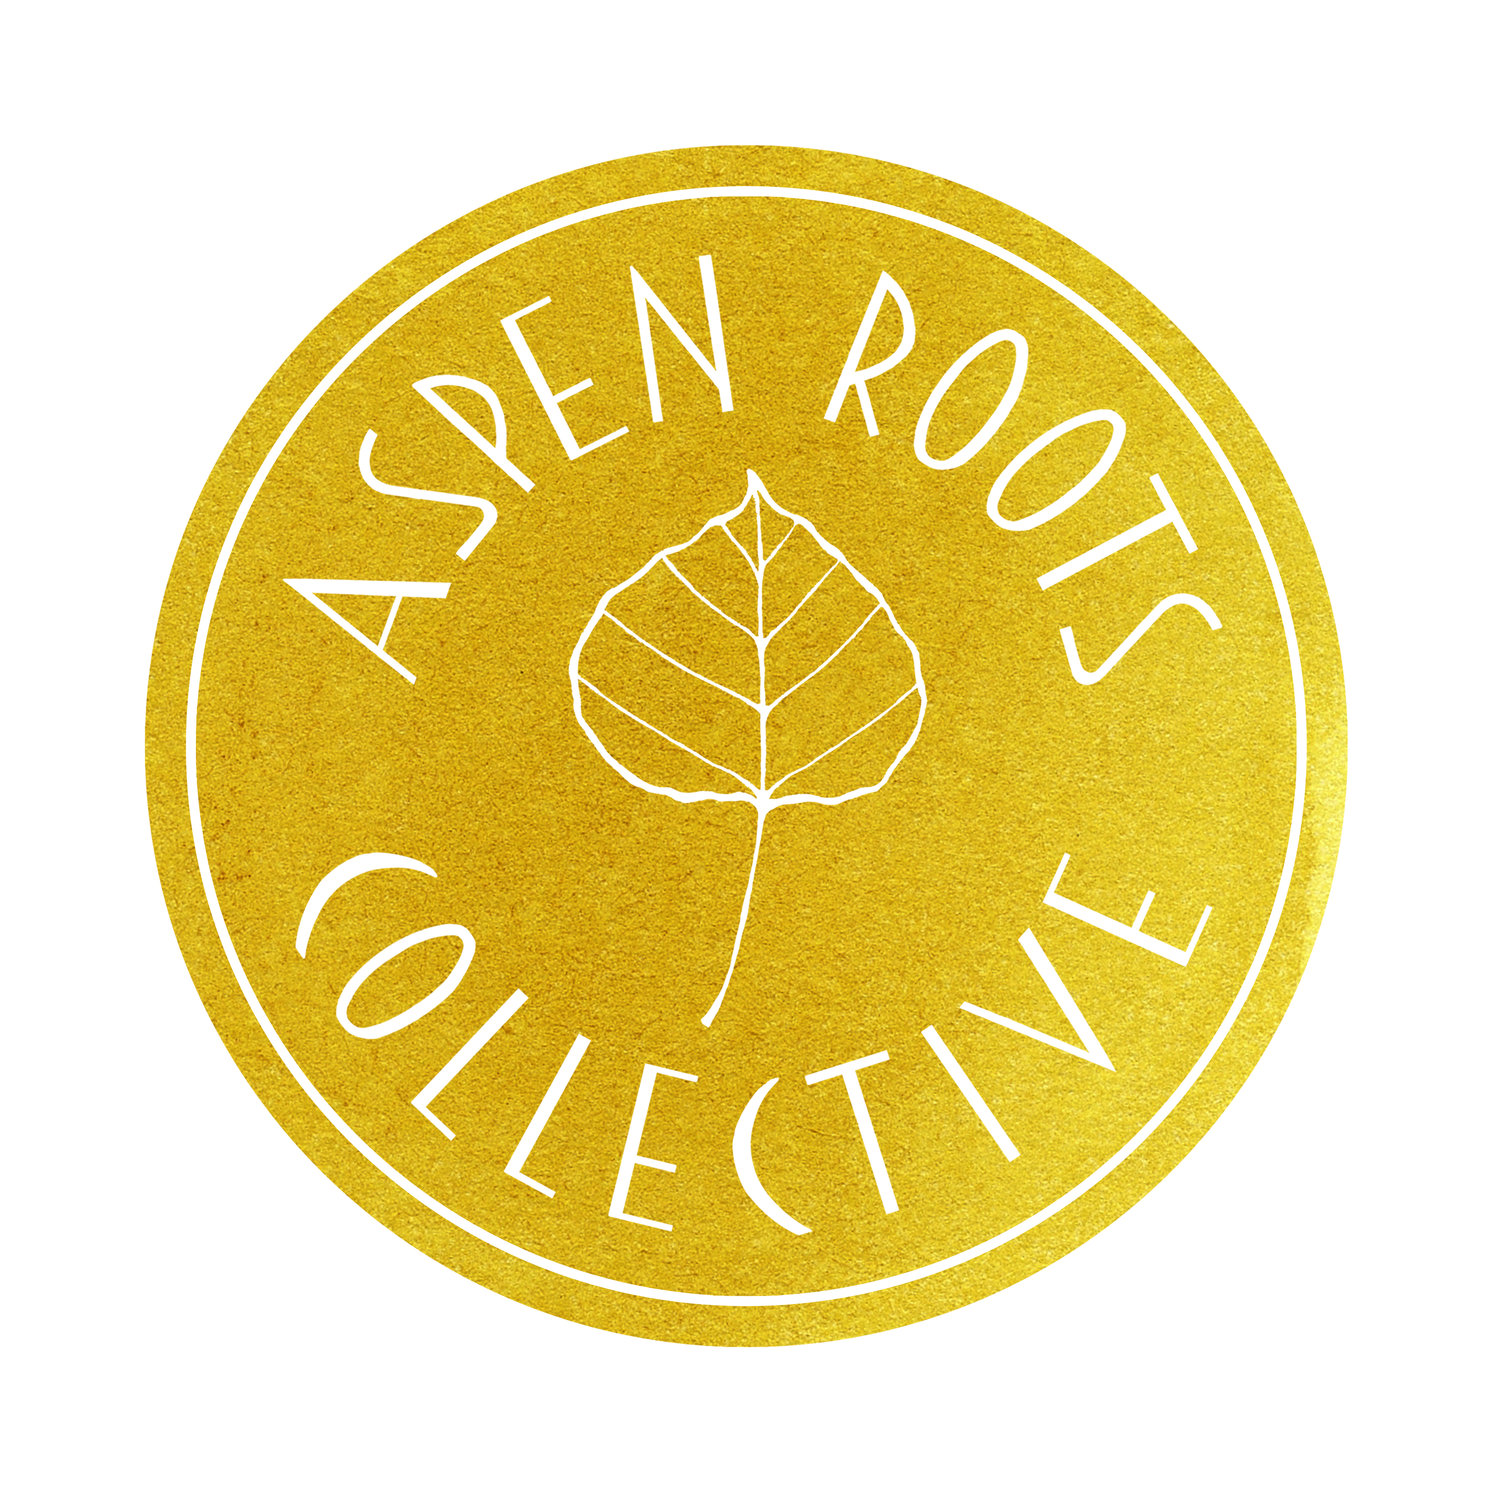 Aspen Roots Collective, PLLC